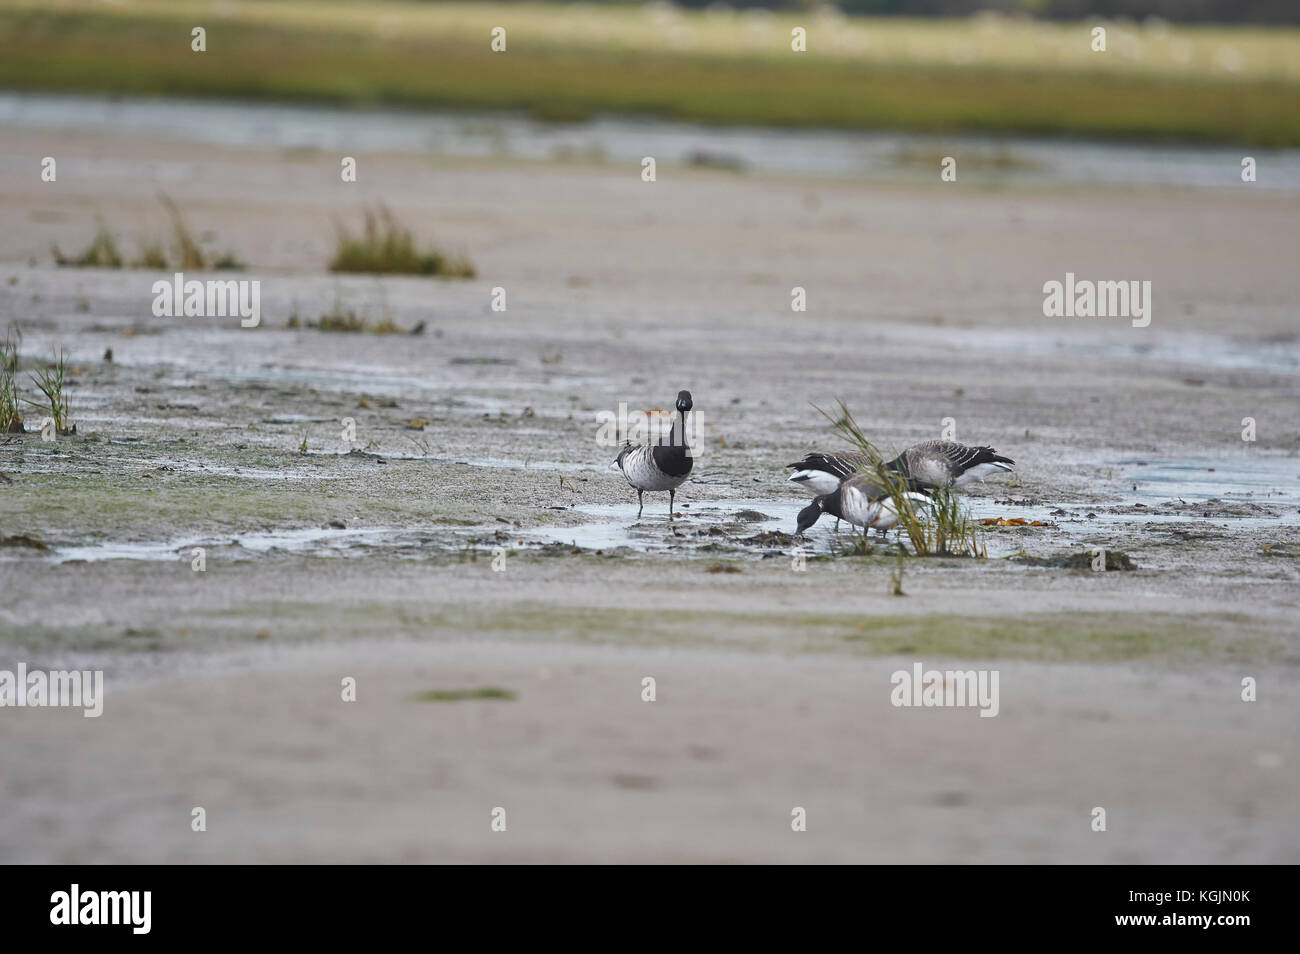 Brent or Brant Geese Branta bernicla feeding on the tidal mudflats near Holy Island Lindisfarne on the North East - Stock Image